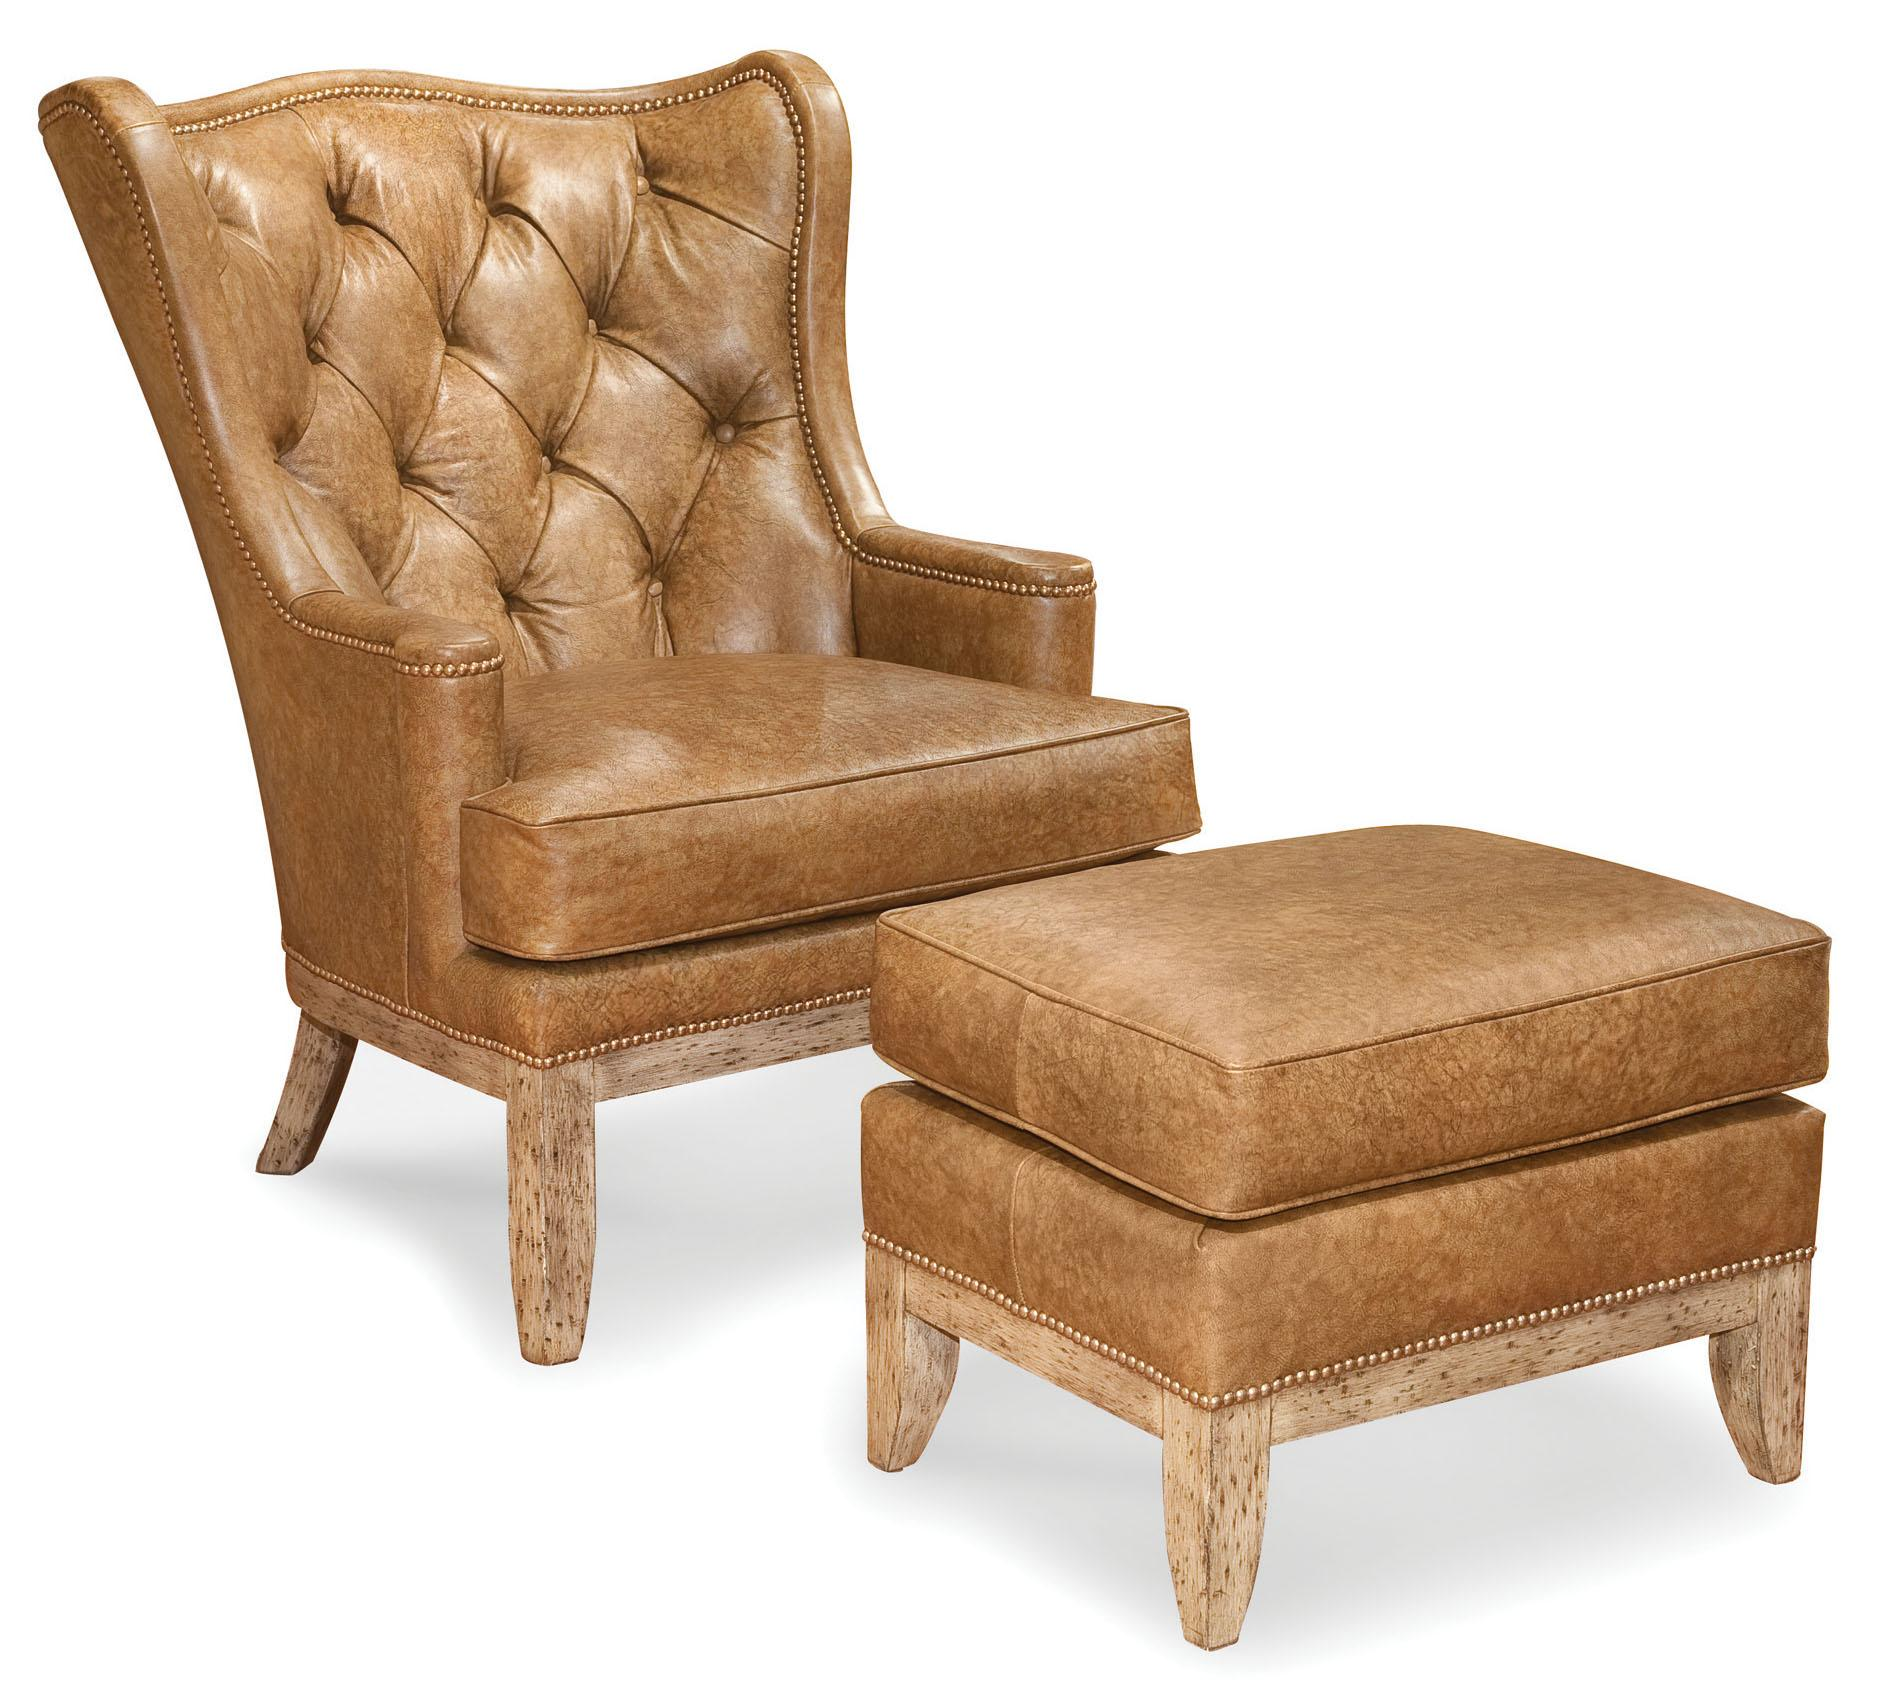 Fairfield Chairs Fairfield Chairs Tufted Wing Chair With Nailhead Trim